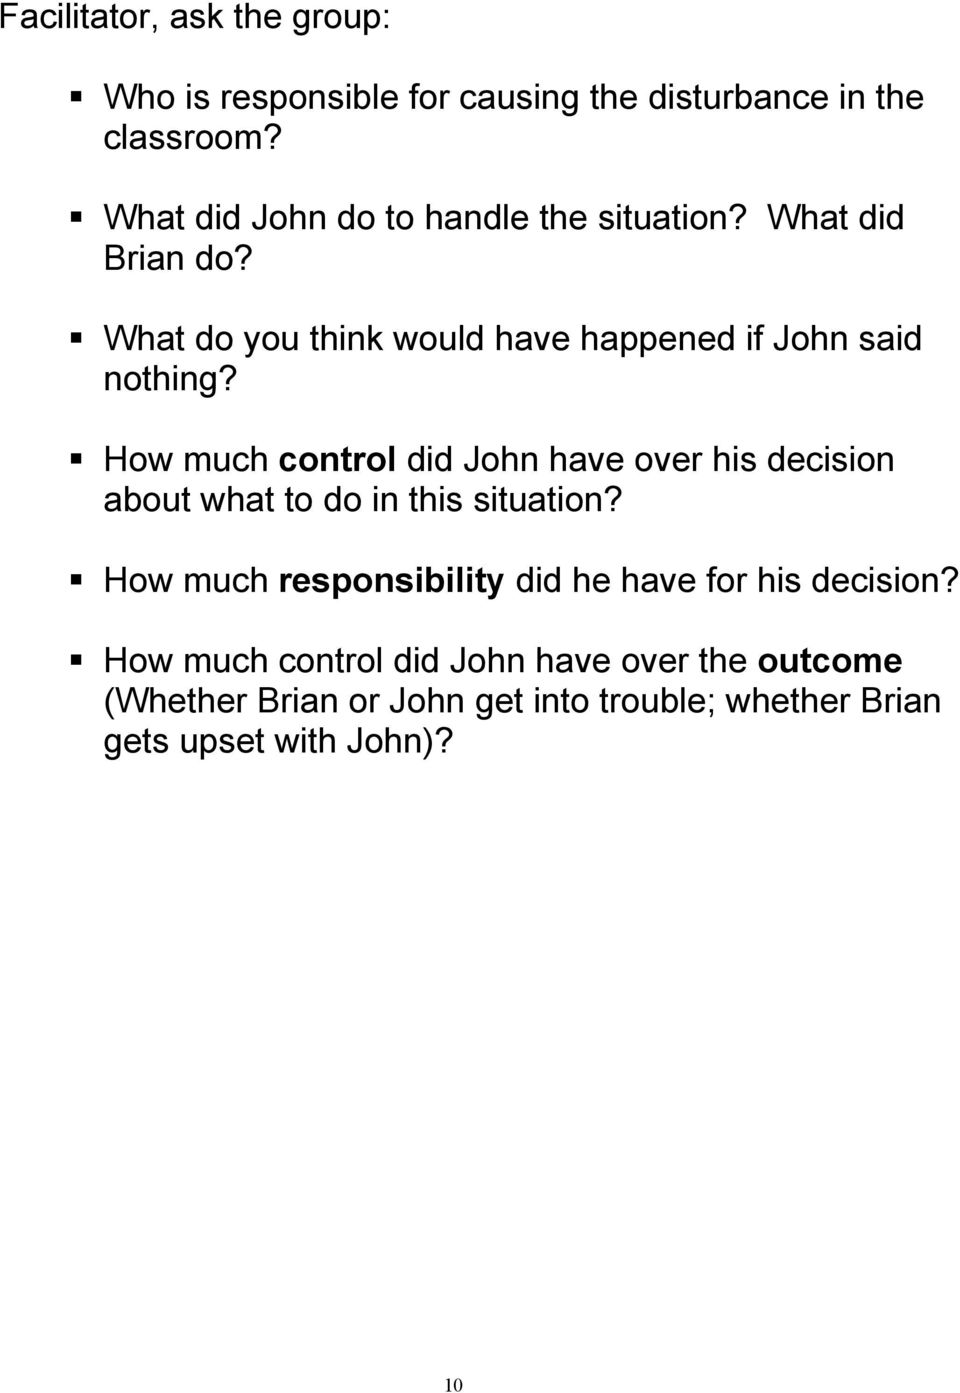 How much control did John have over his decision about what to do in this situation?